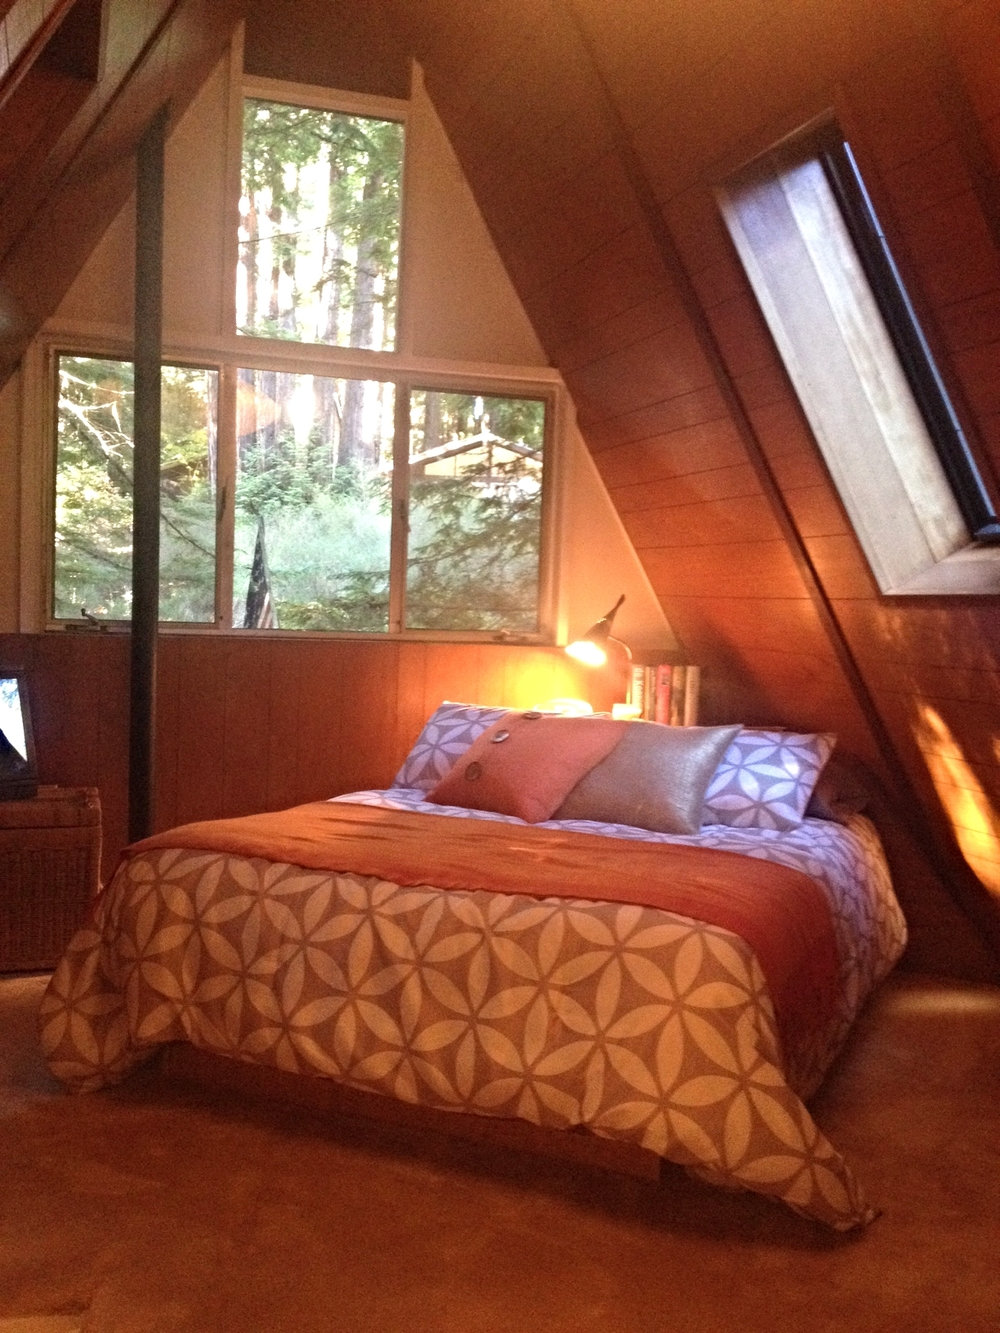 The loft bedroom